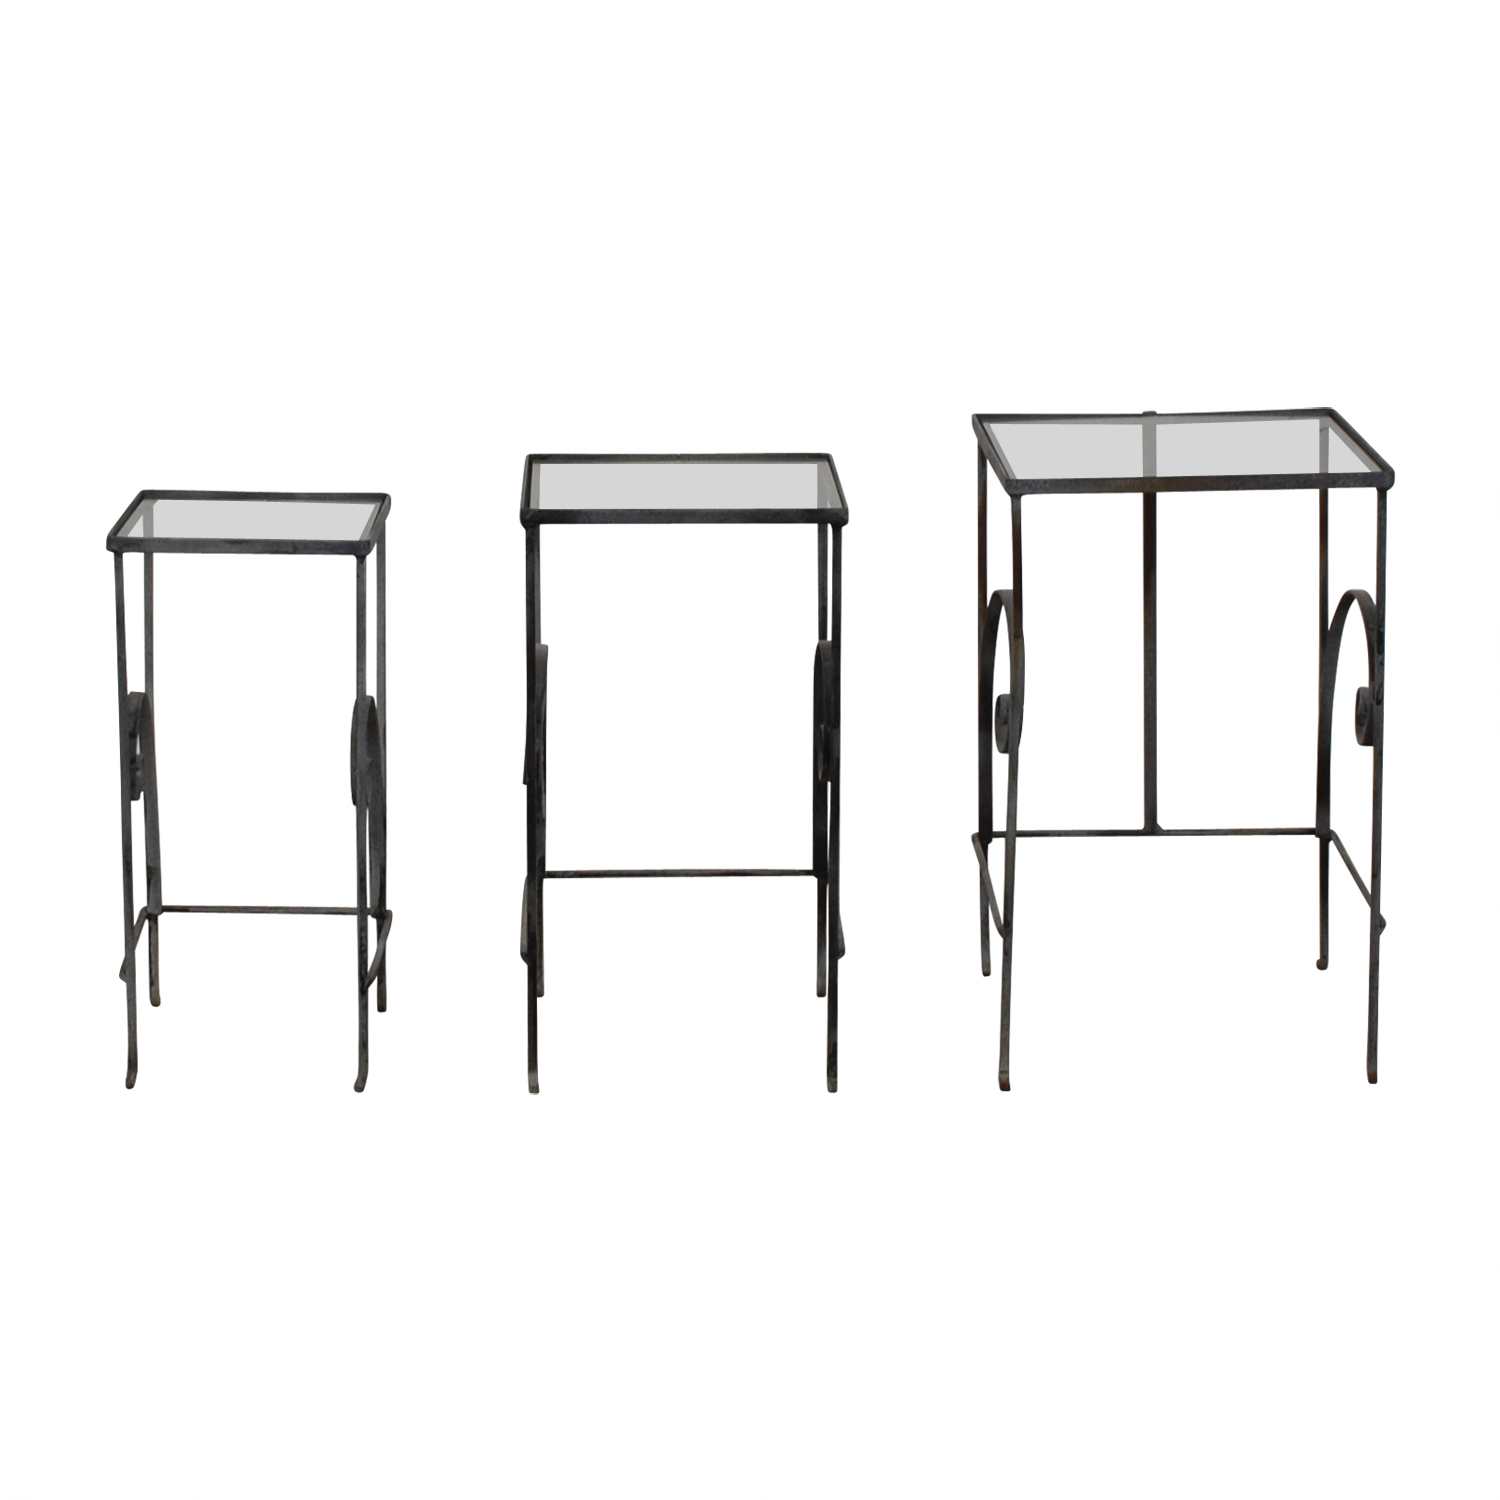 Antique Glass & Metal Nesting Tables